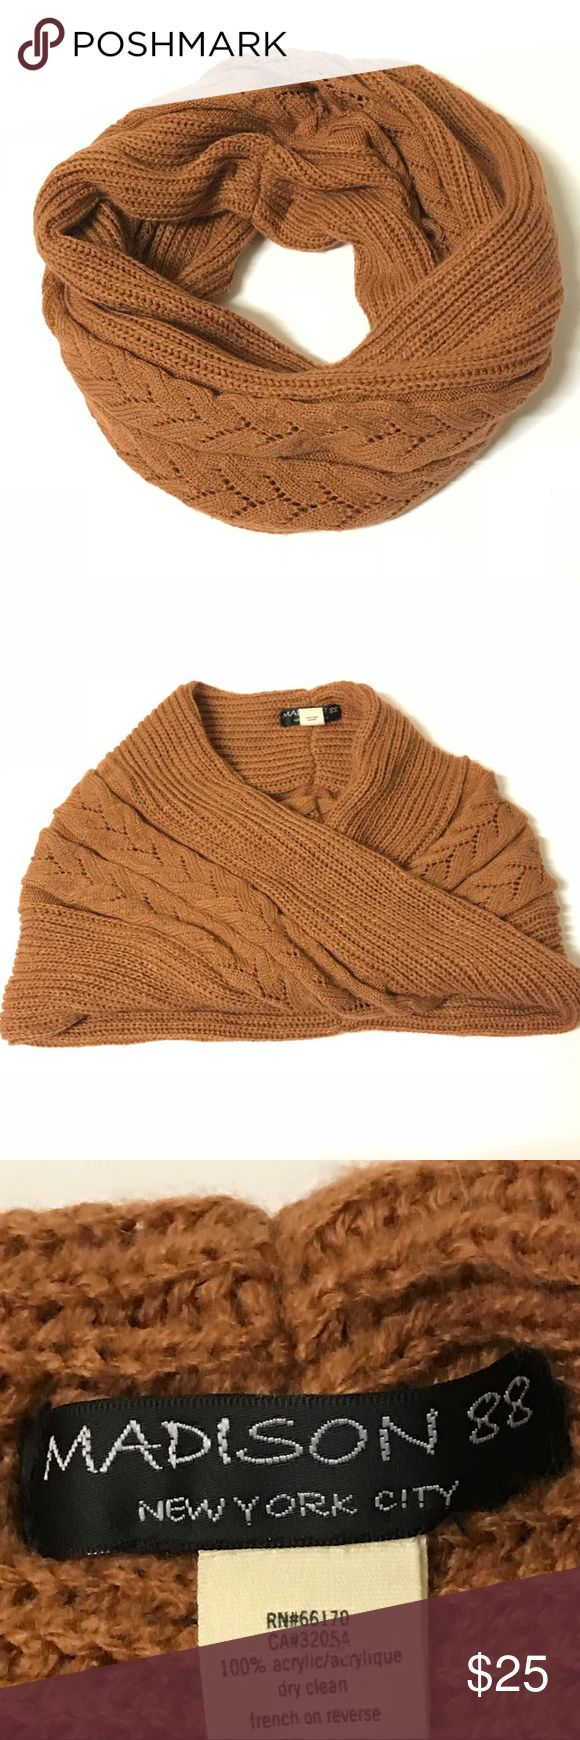 Madison 88 For Anthro Chunky Infinity Scarf Madison 88 For Anthropologie Chunky Infinity Scarf. Rust-brown color. One size. Excellent pre-owned condition! Anthropologie Accessories Scarves & Wraps